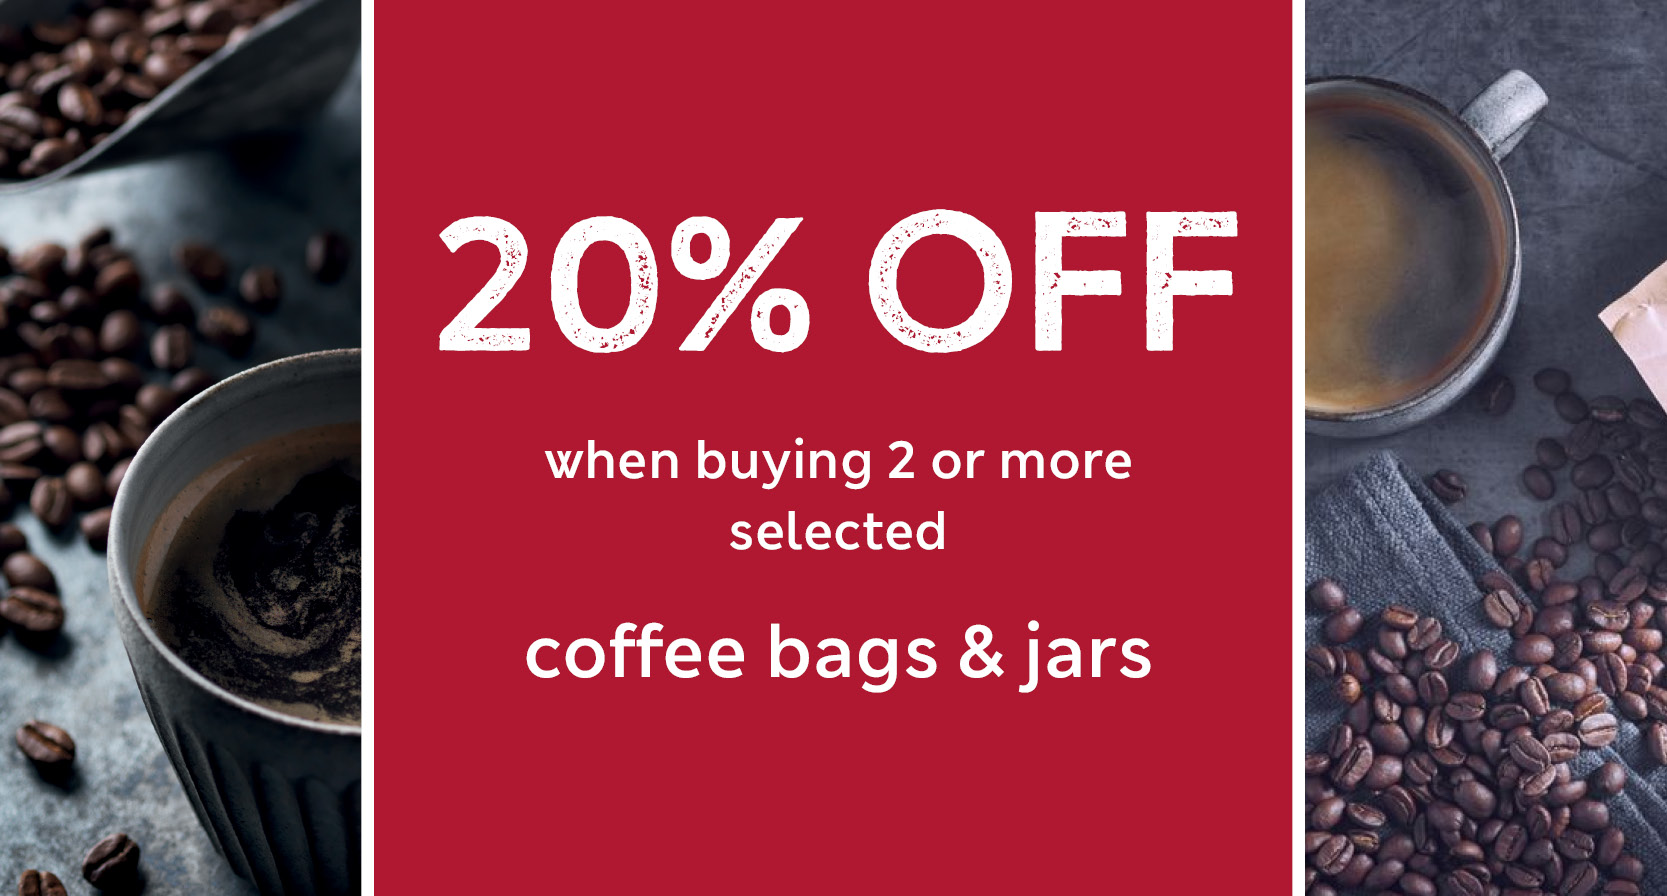 M&S Winedrop Coffee Bags & Jars